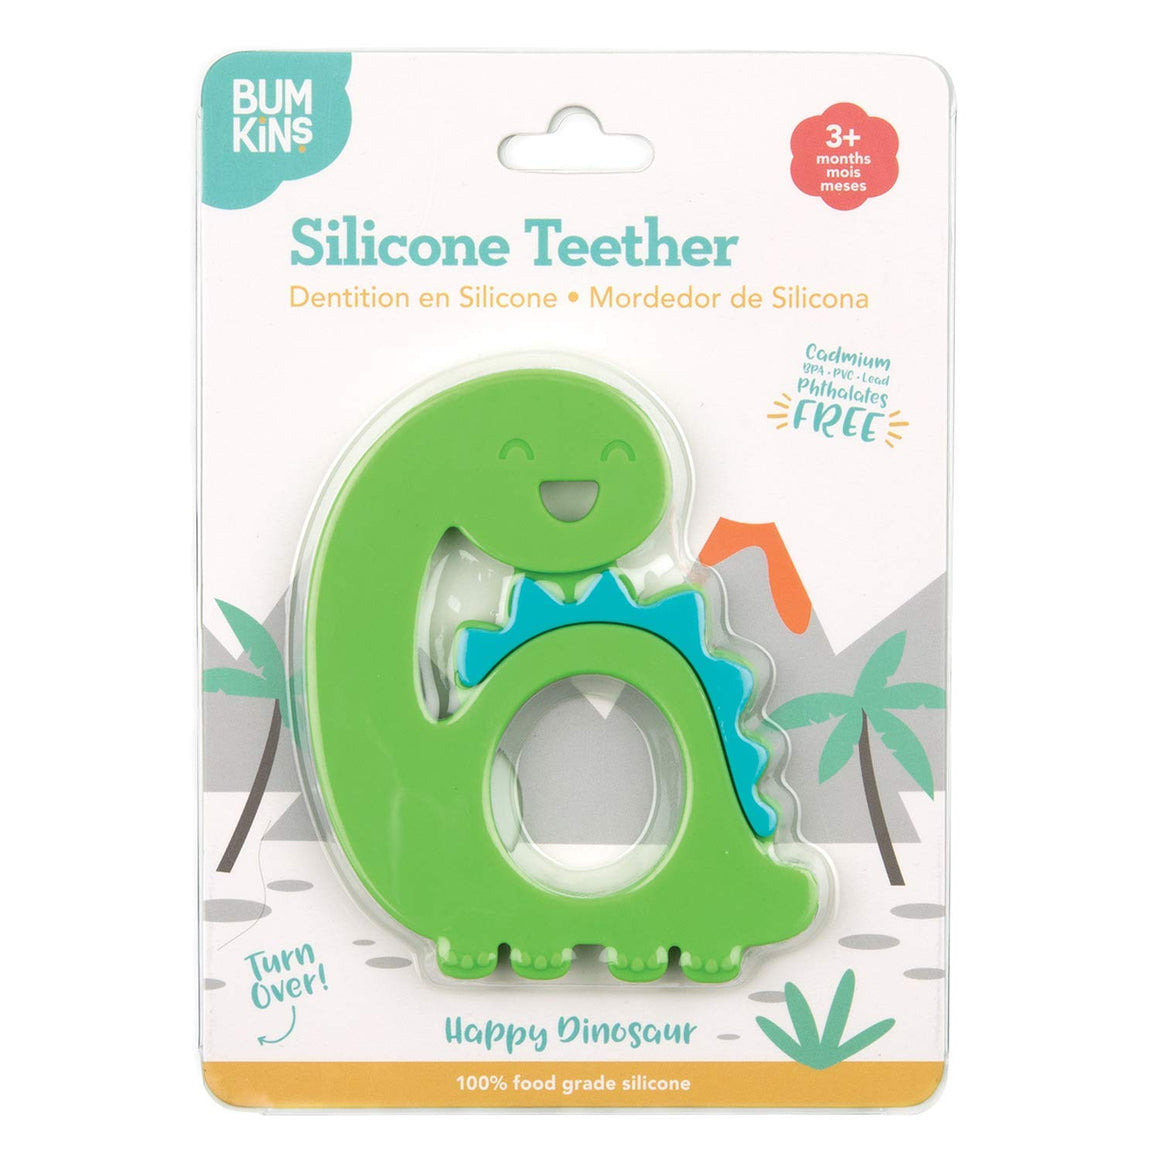 Dino Silicone Teether by Bumkins